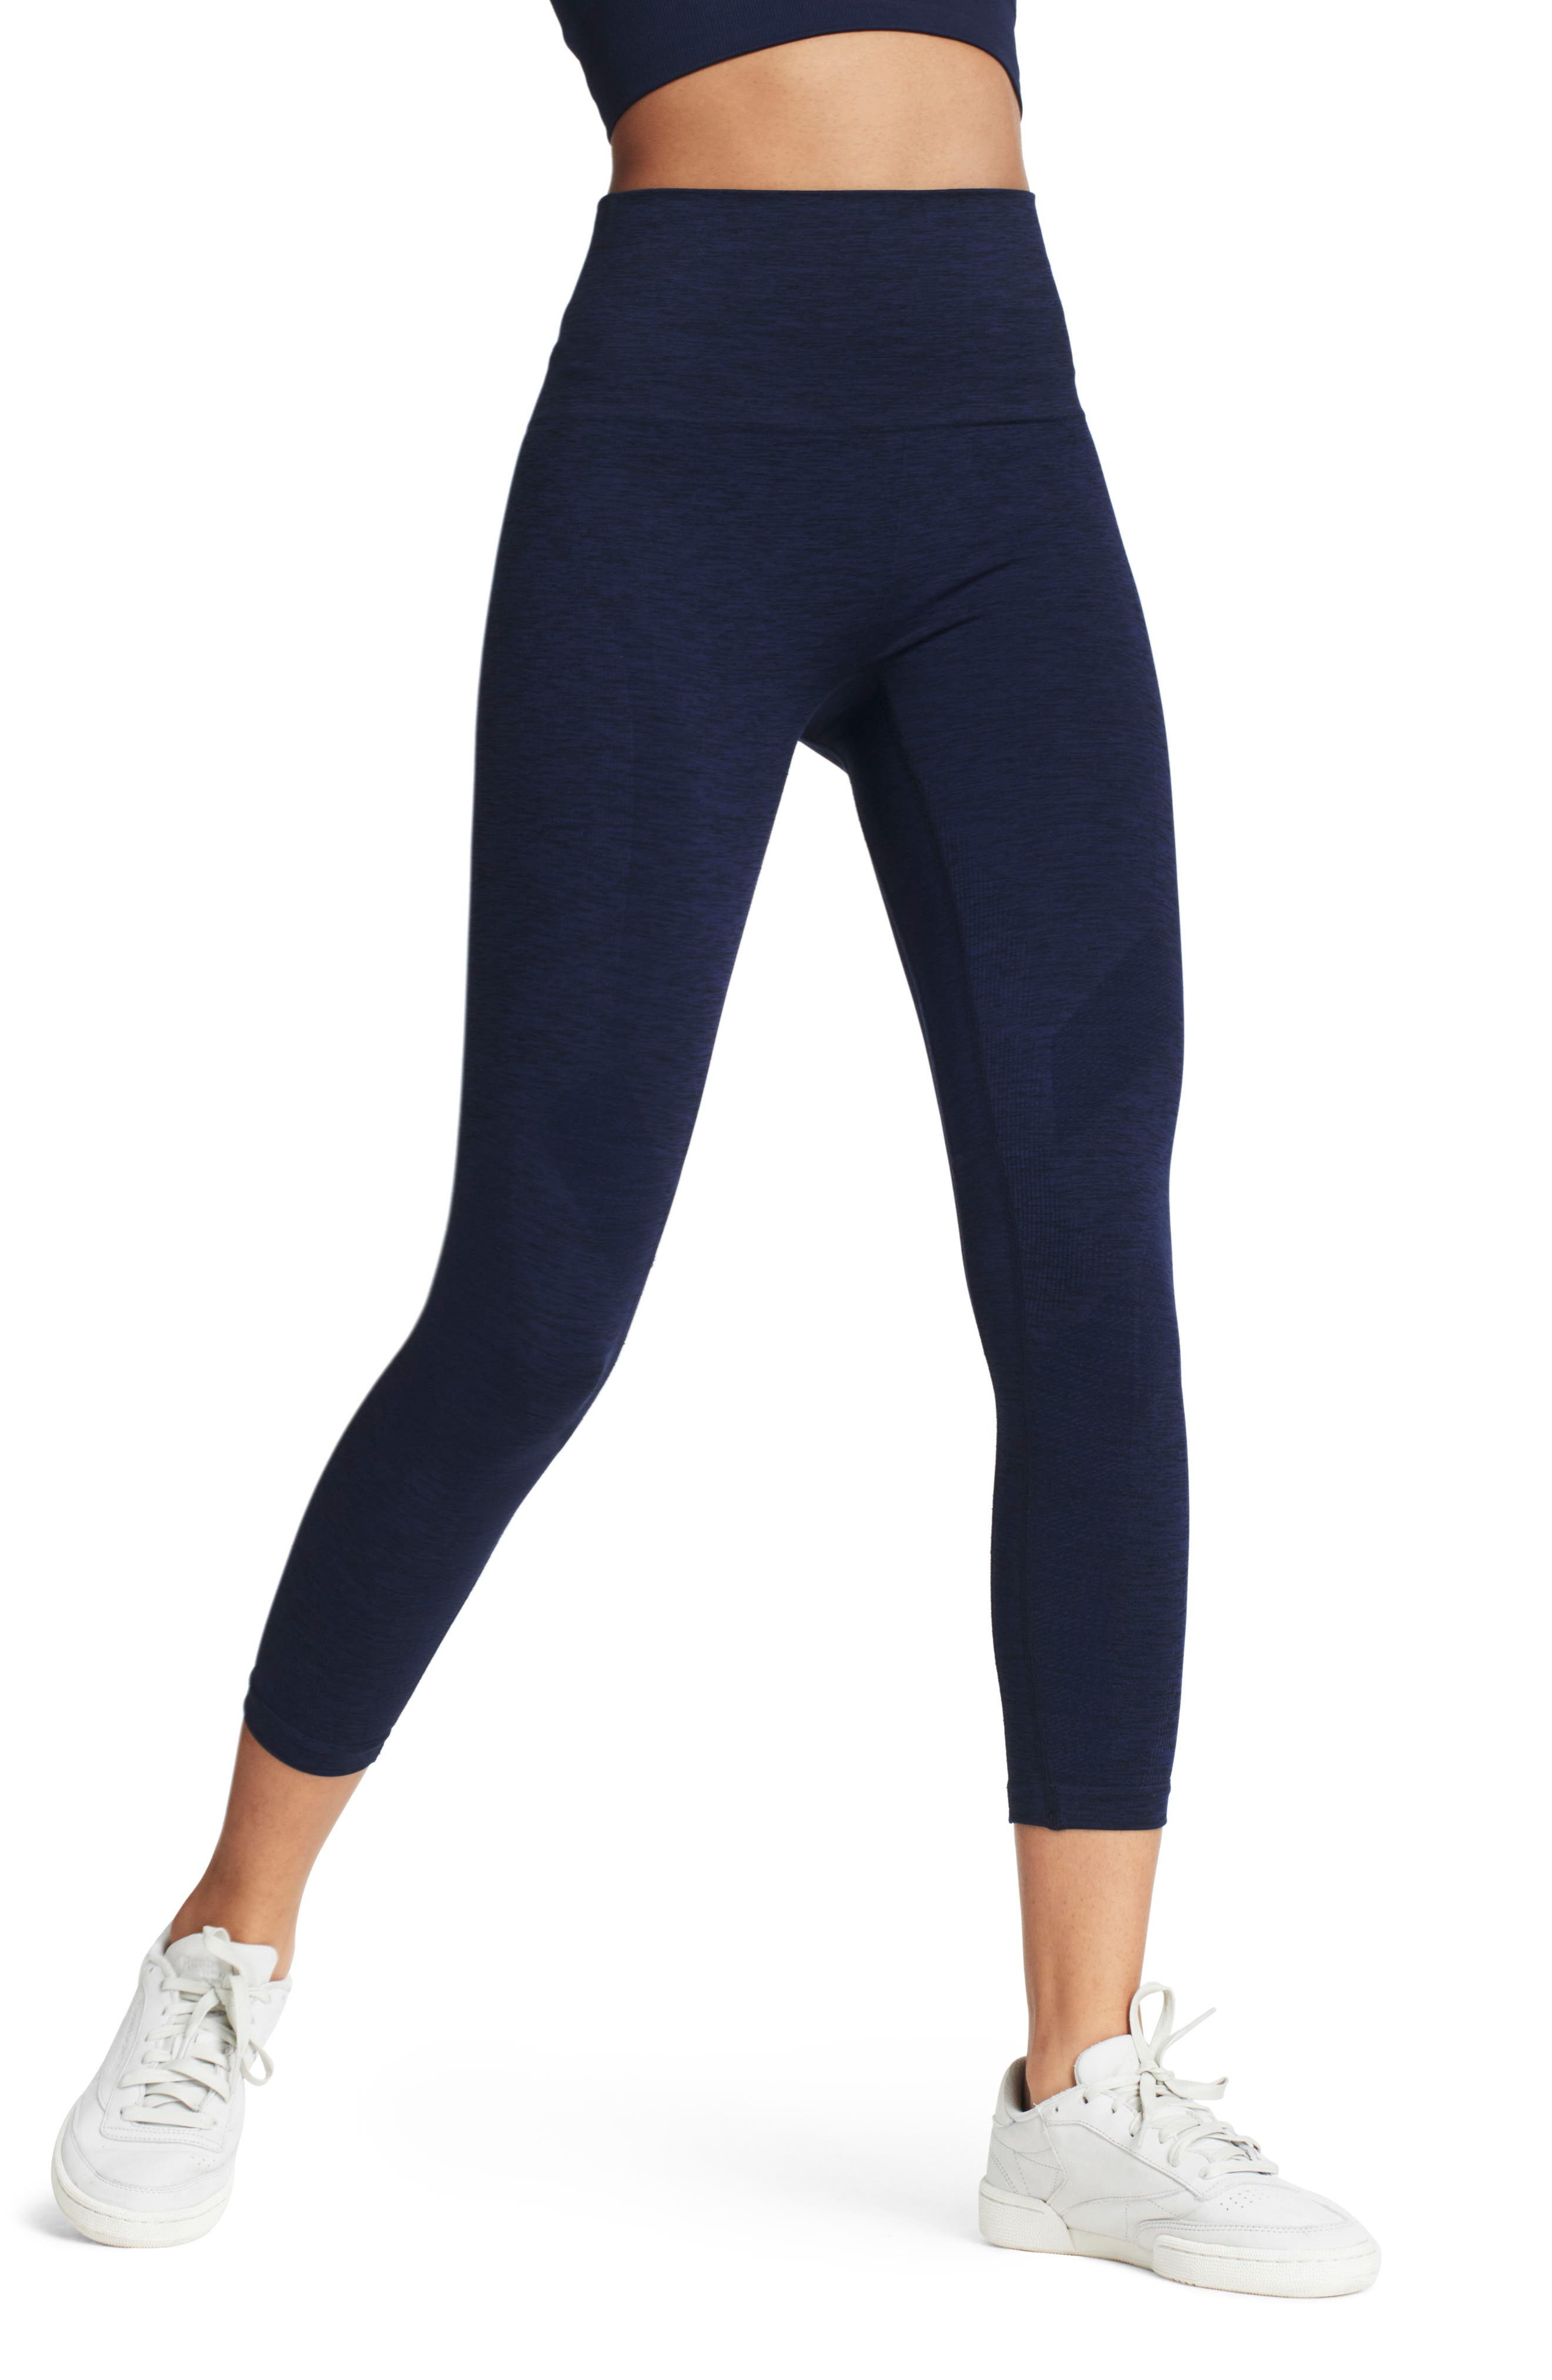 Six Eight High Waist Crop Leggings,                             Main thumbnail 1, color,                             400